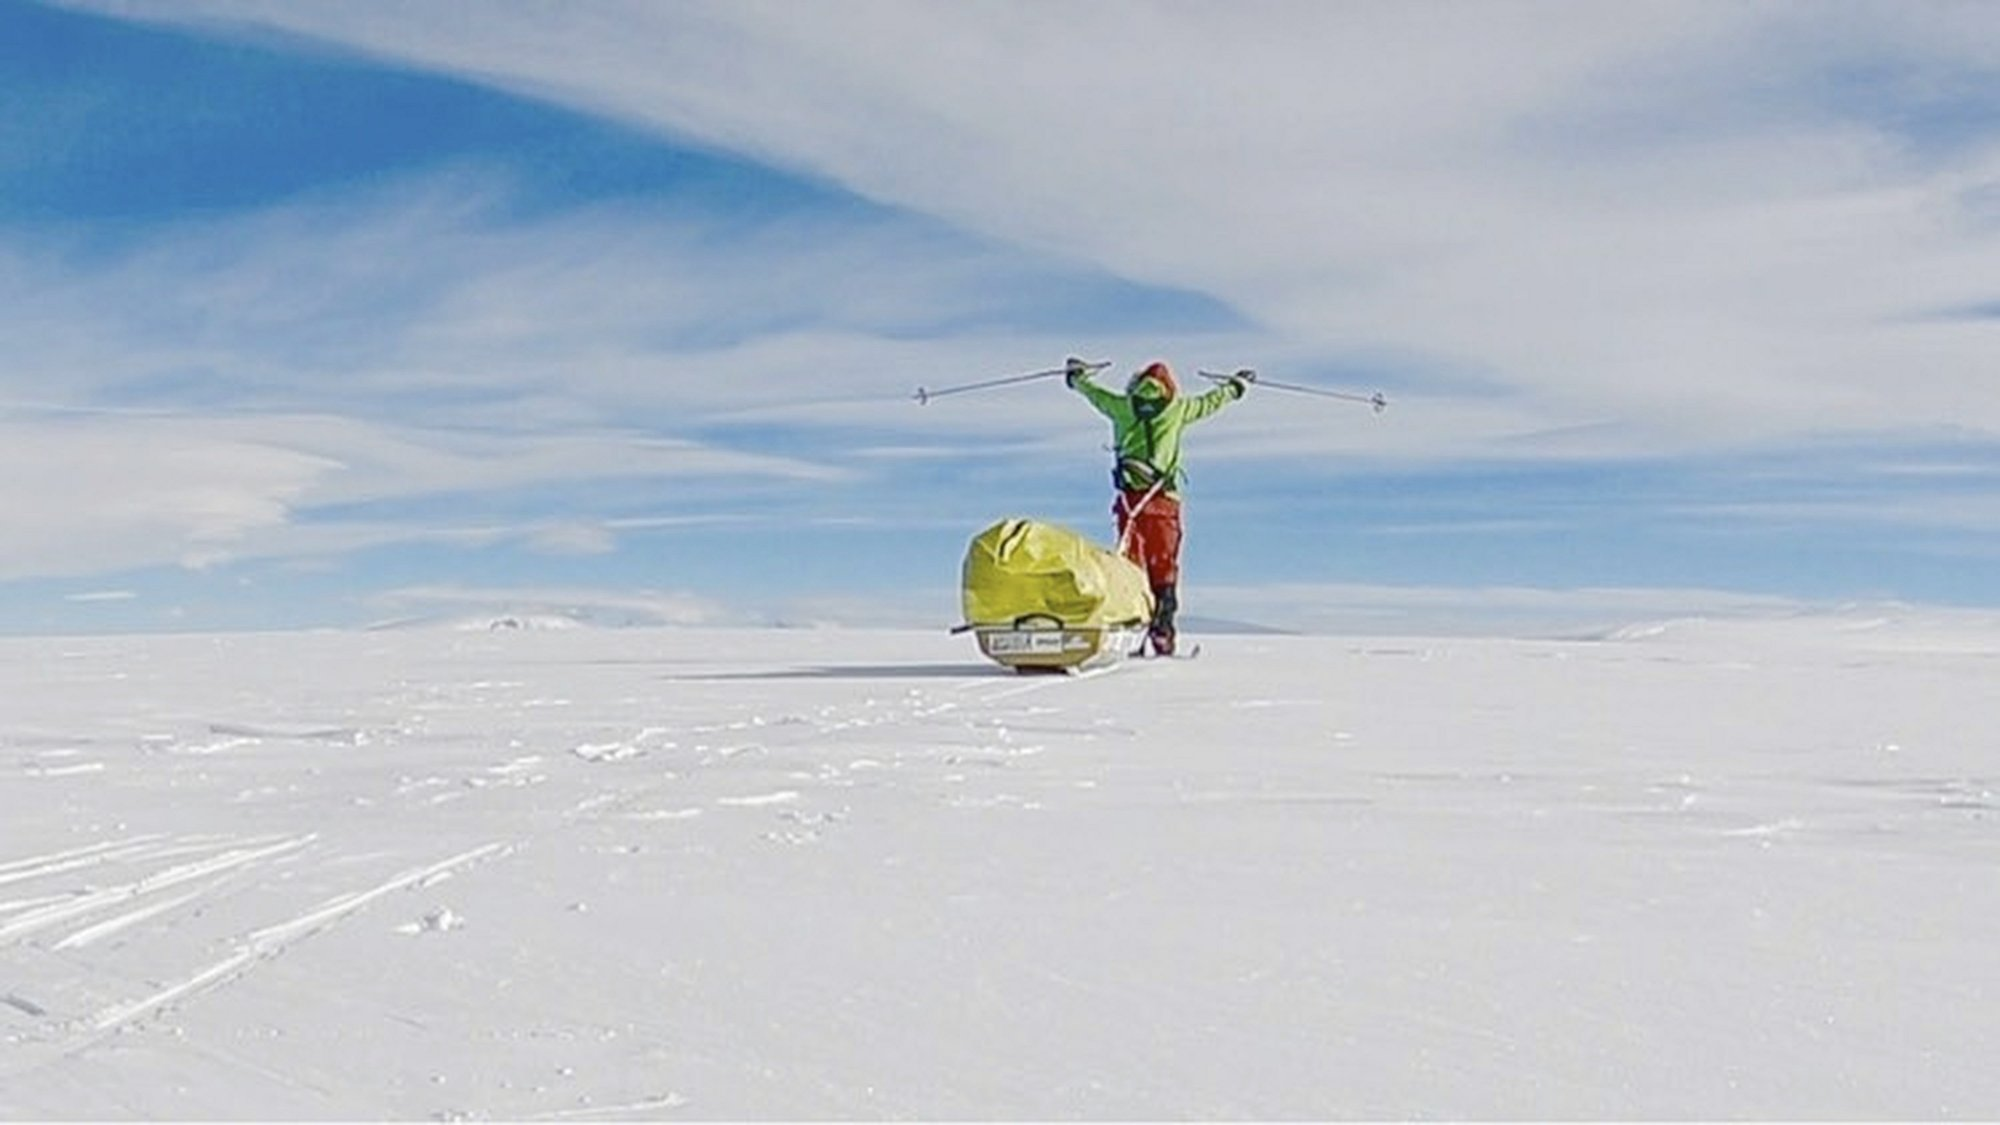 American man first to solo across Antarctica unaided